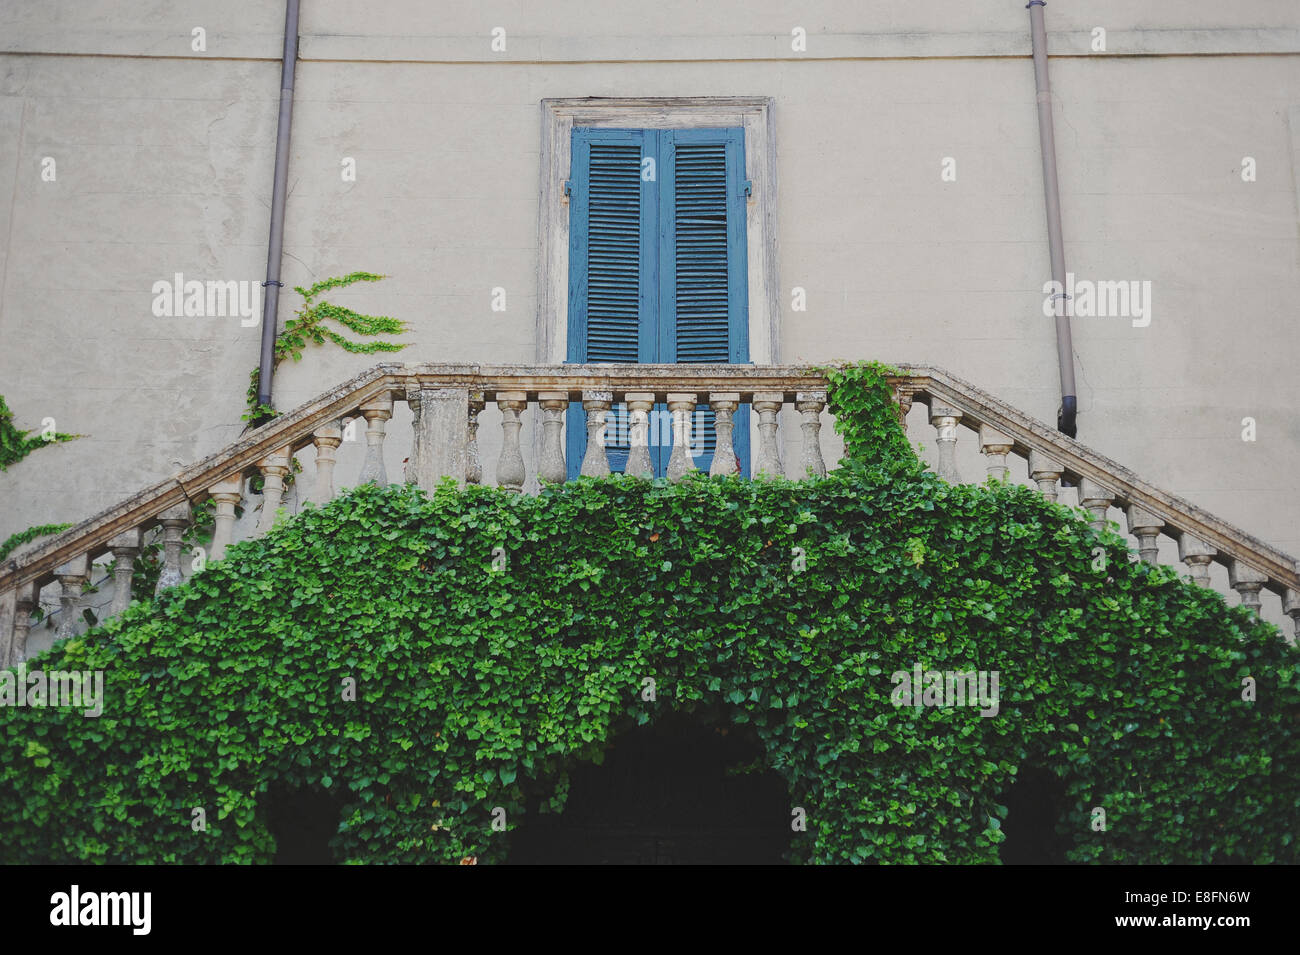 Italy, Lombardia, Pavia, Nazzano, Detail of light blue door in old castle - Stock Image